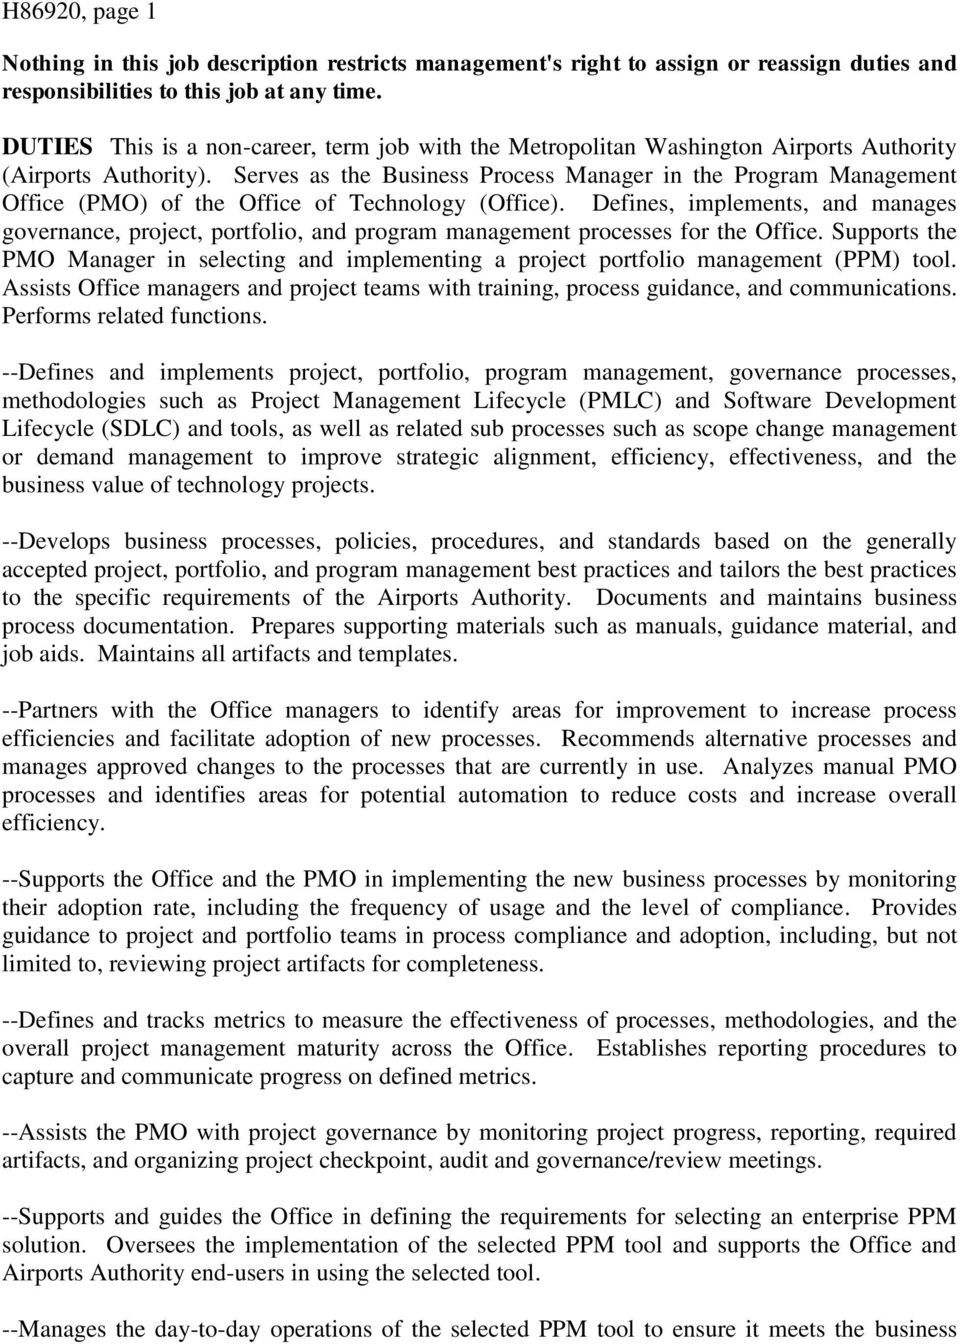 Nothing In This Job Description Restricts Management S Right To Assign Or Reassign Duties And Responsibilities To This Job At Any Time Pdf Free Download